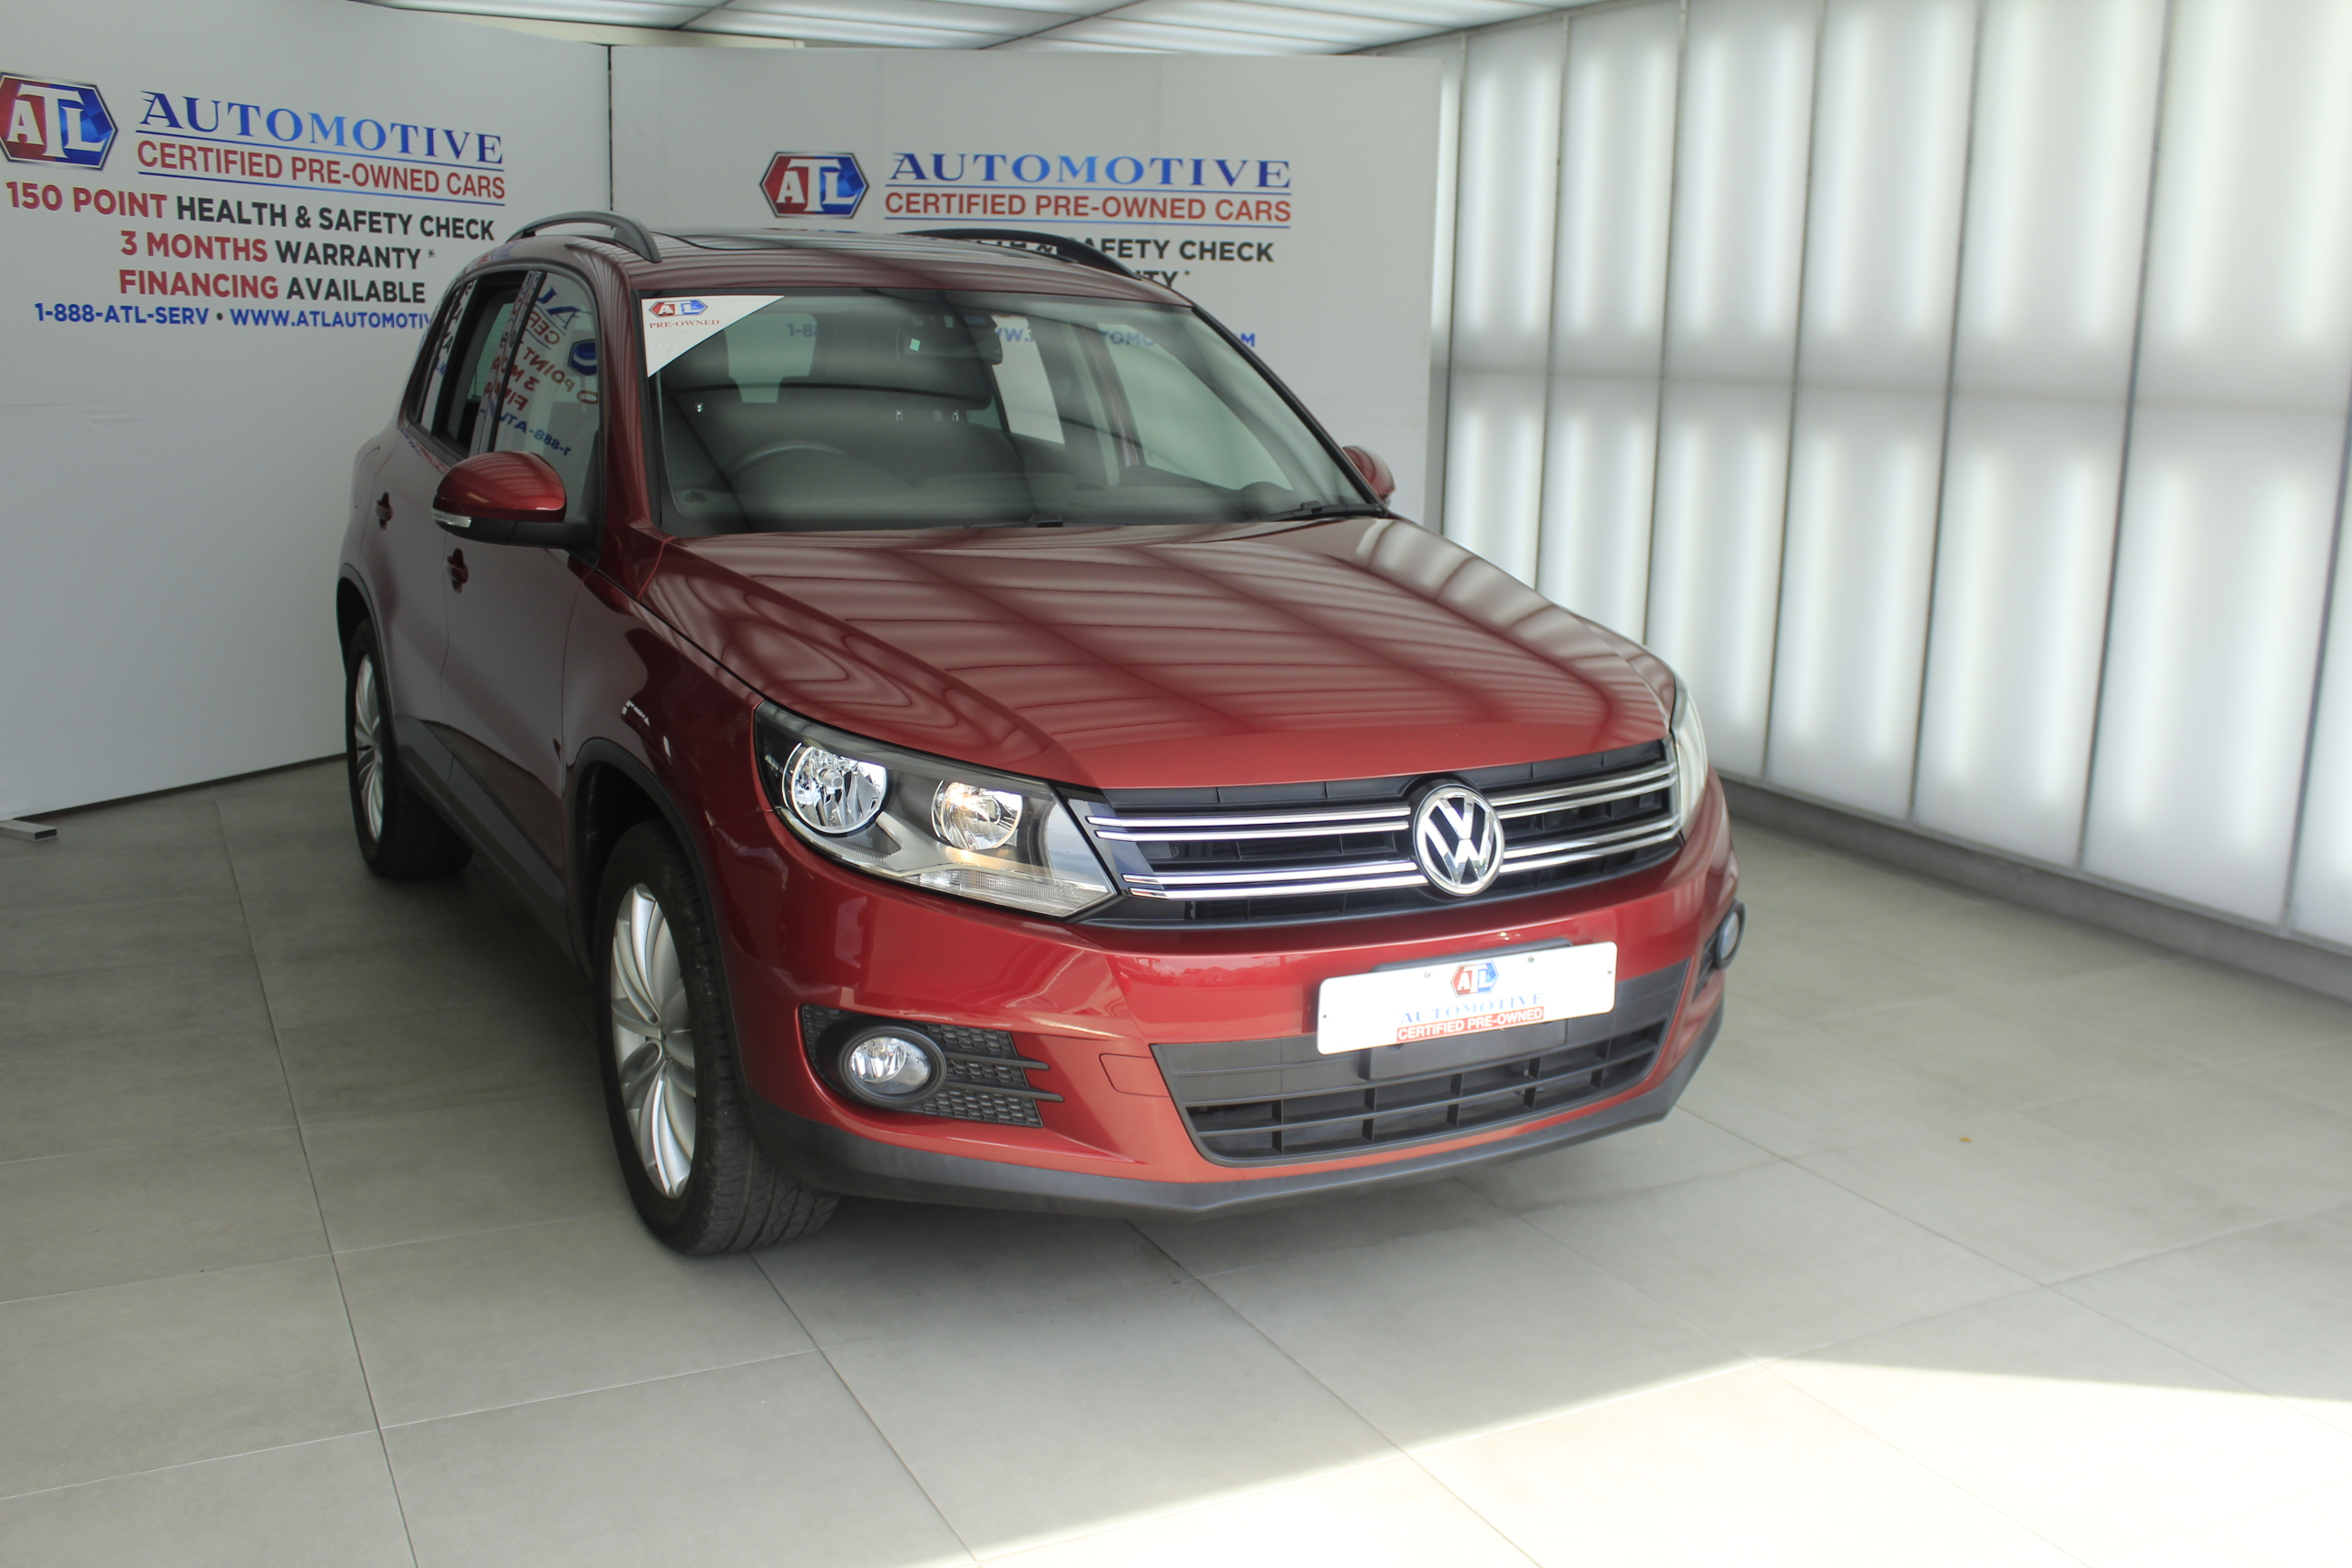 Cars For Sale In Jamaica With Financing: Cars For Sale In Jamaica 2014 Used Volkswagen Tiguan SUV